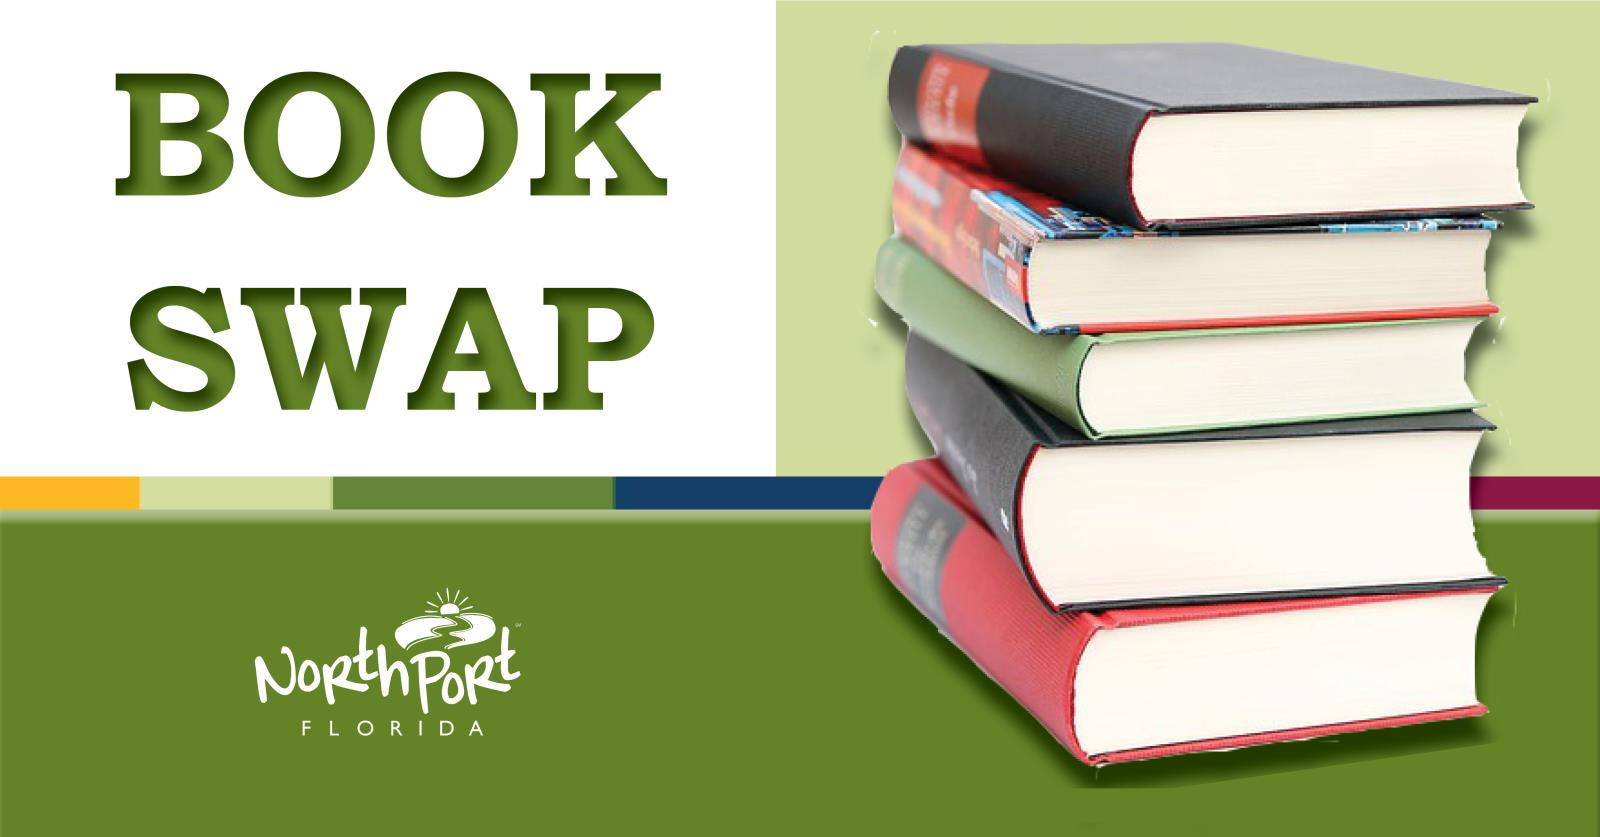 Stack of Books promoting North Port's Book Swap event